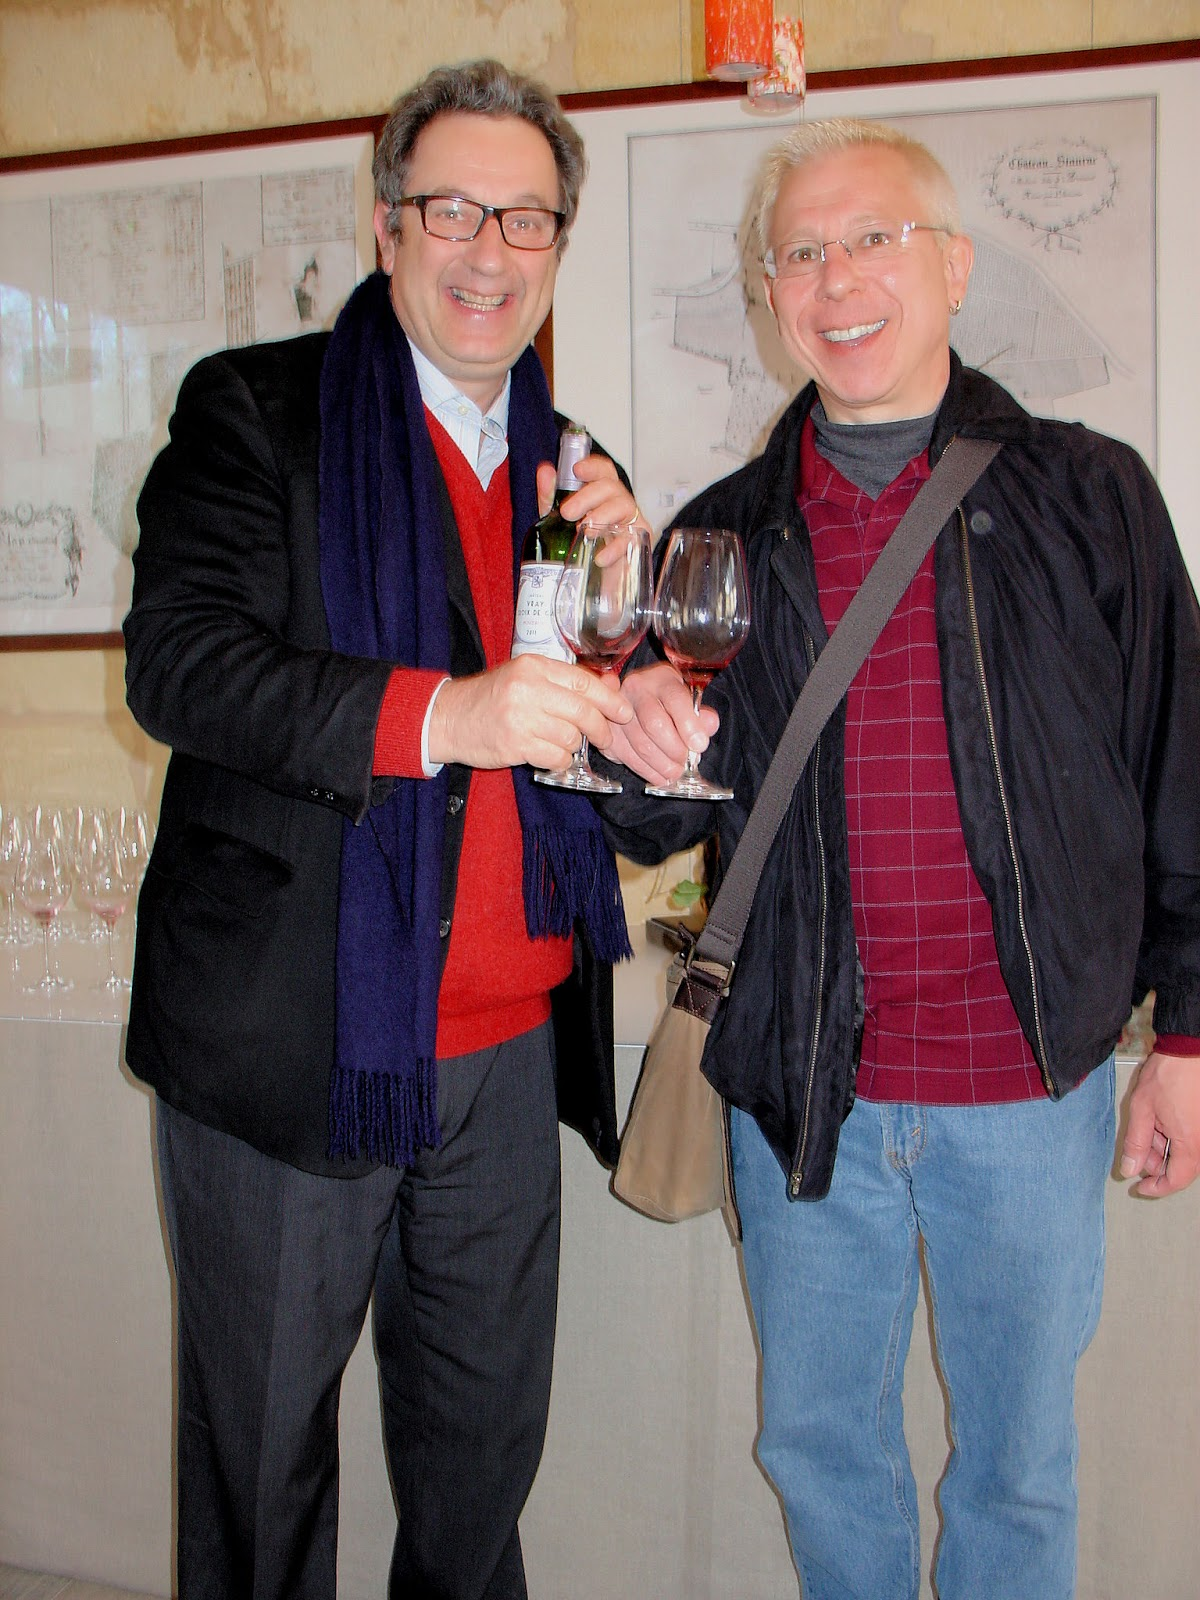 Our final Bordeaux tasting at the Château Siaurac. Here with owner Paul Goldschmidt.